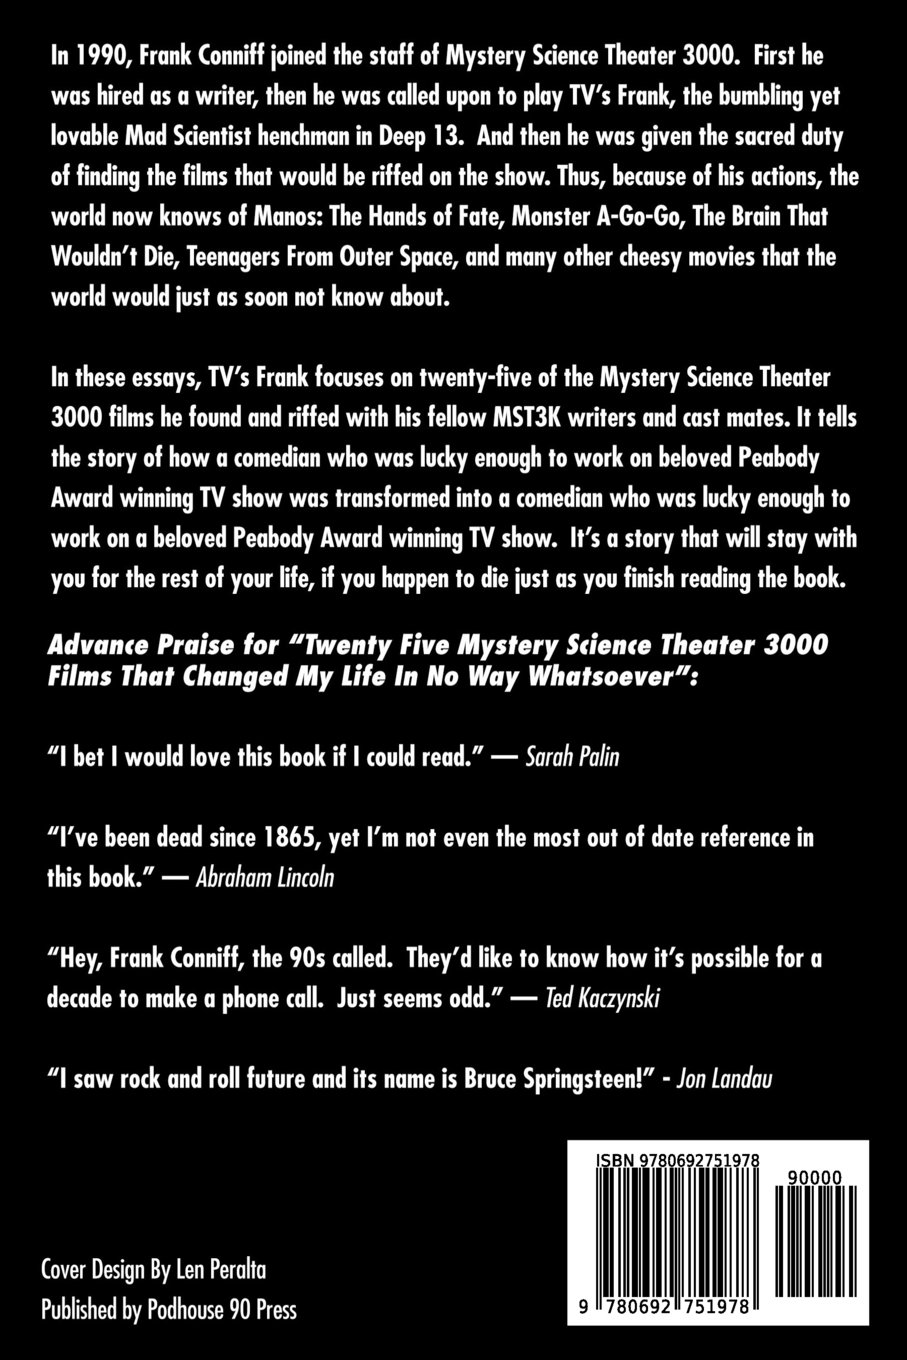 twenty five mystery science theater films that changed my twenty five mystery science theater 3000 films that changed my life in no way whatsoever frank conniff 9780692751978 com books